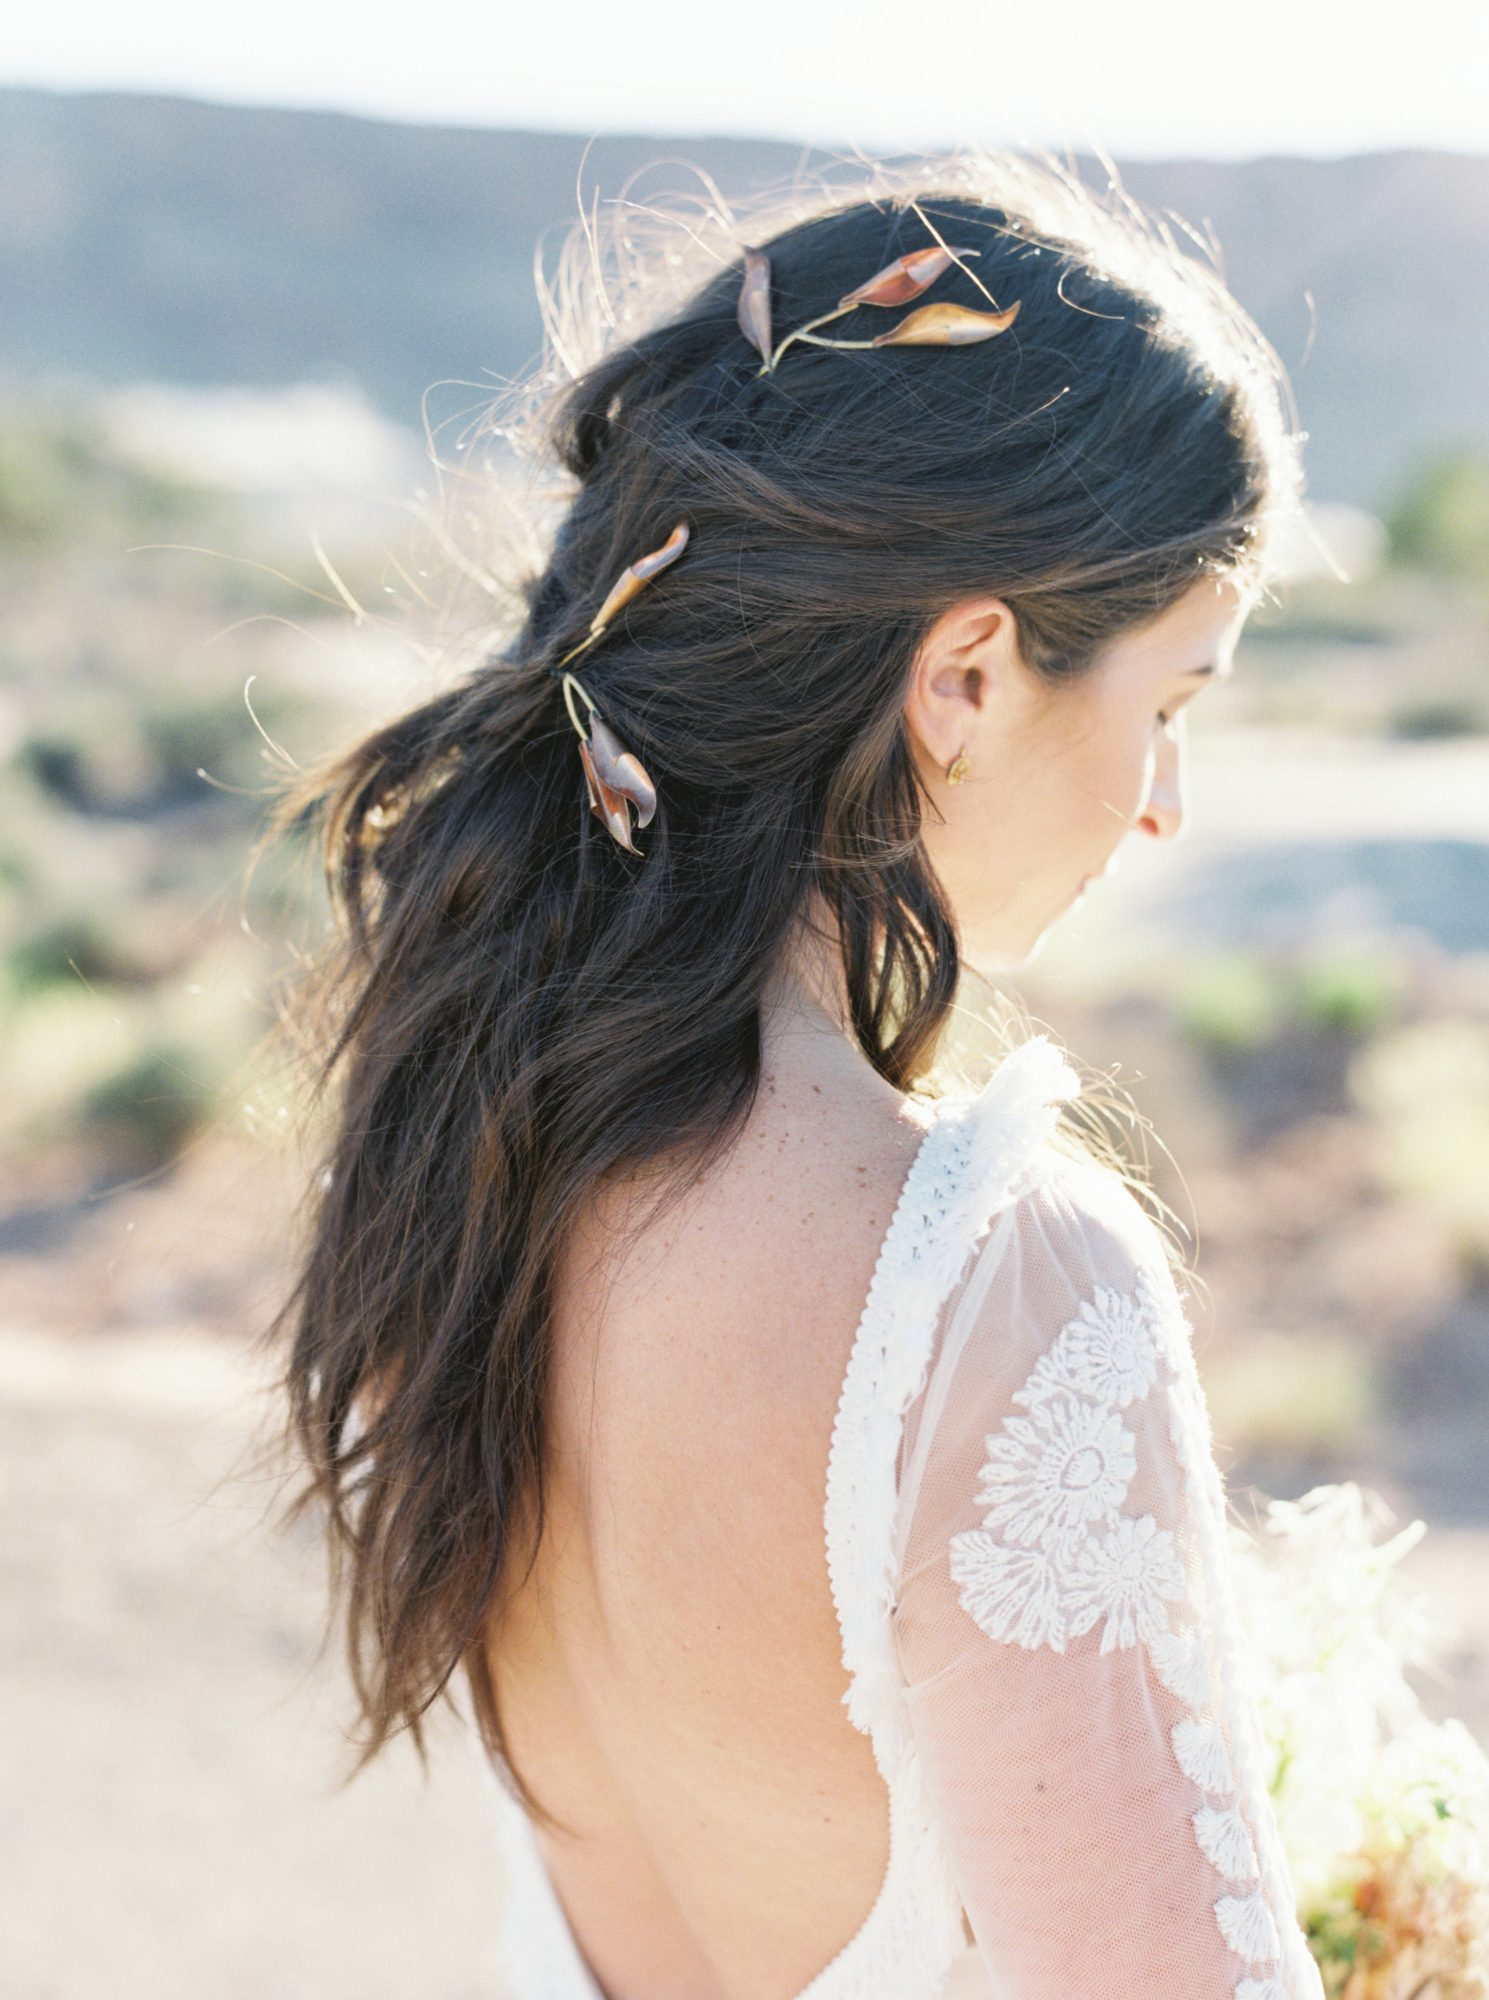 jeanette david wedding bride hair style